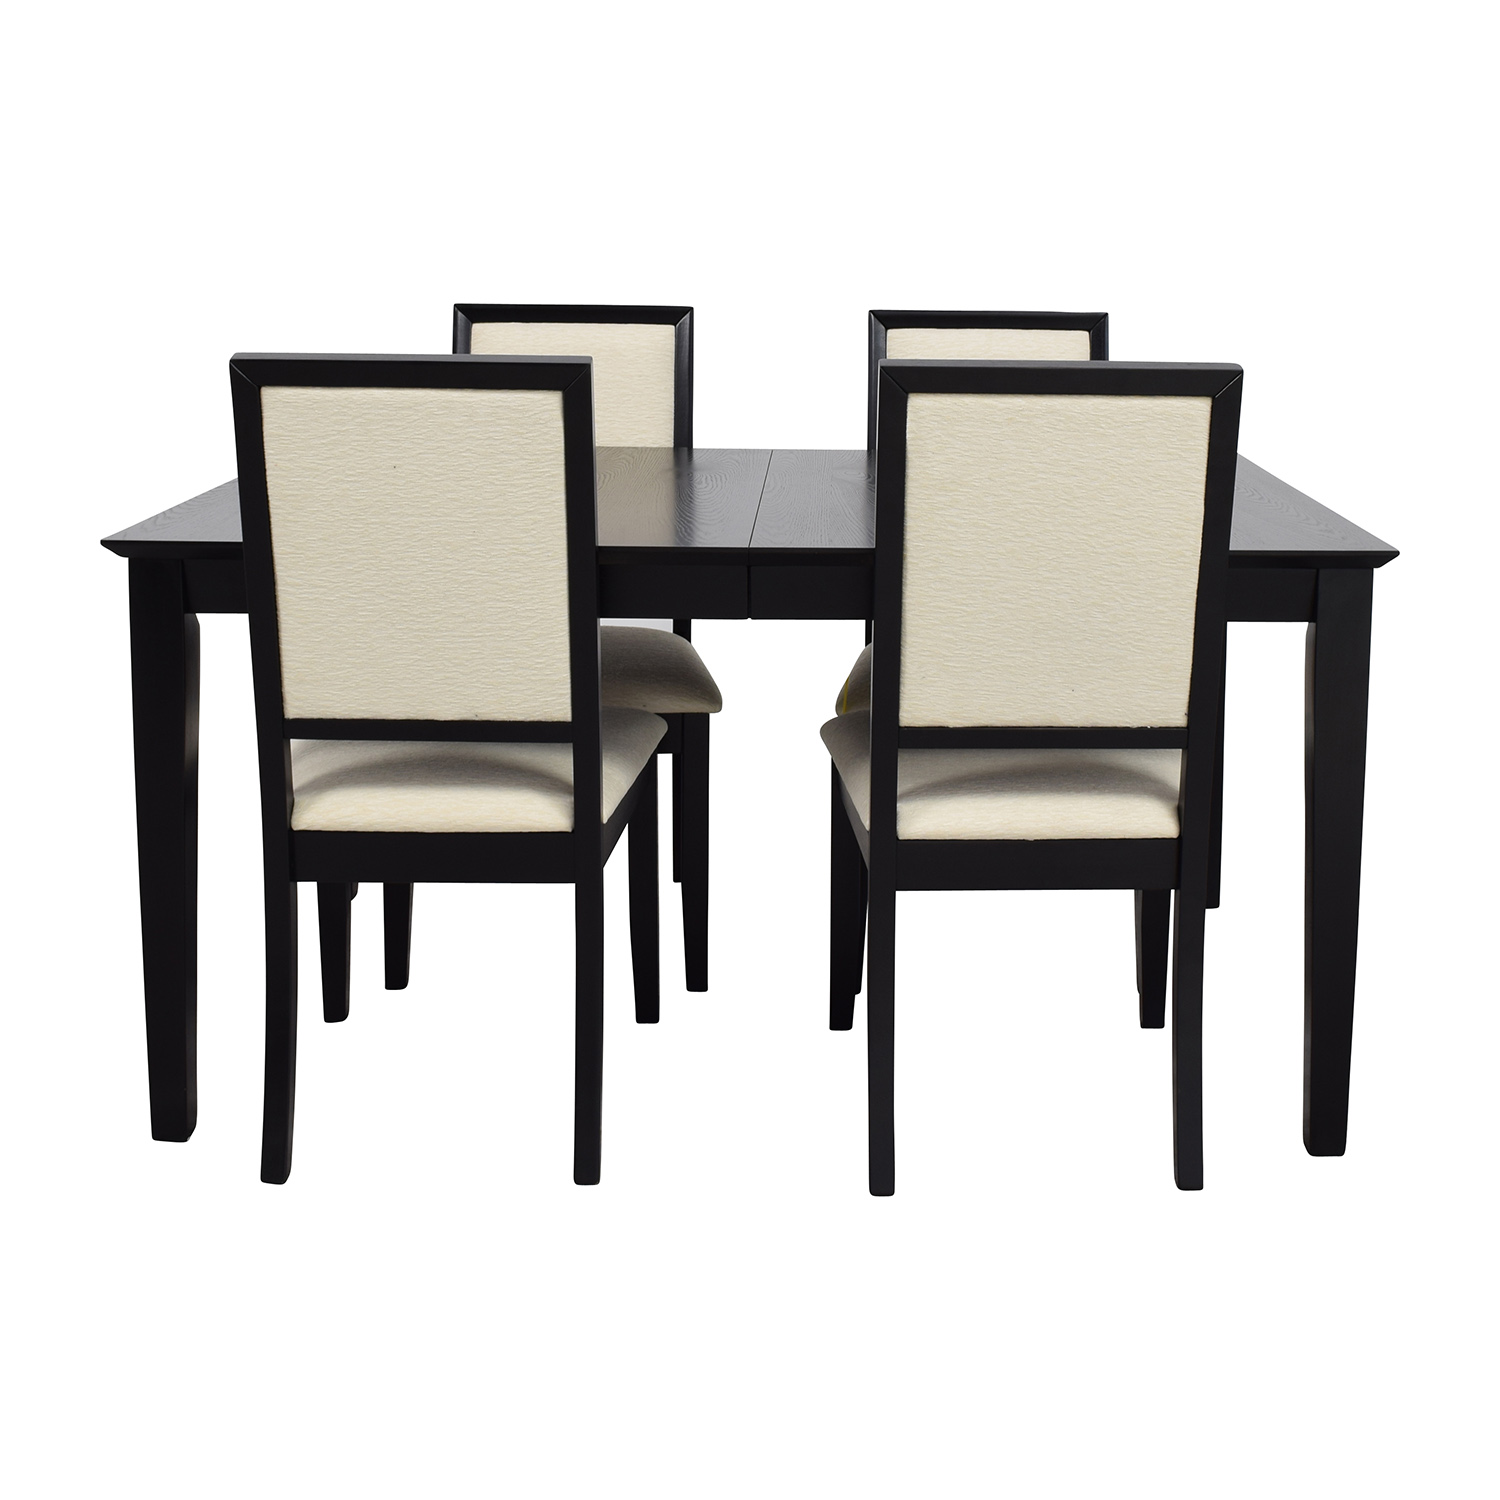 72 Off Harlem Furniture Harlem Furniture Black Dining